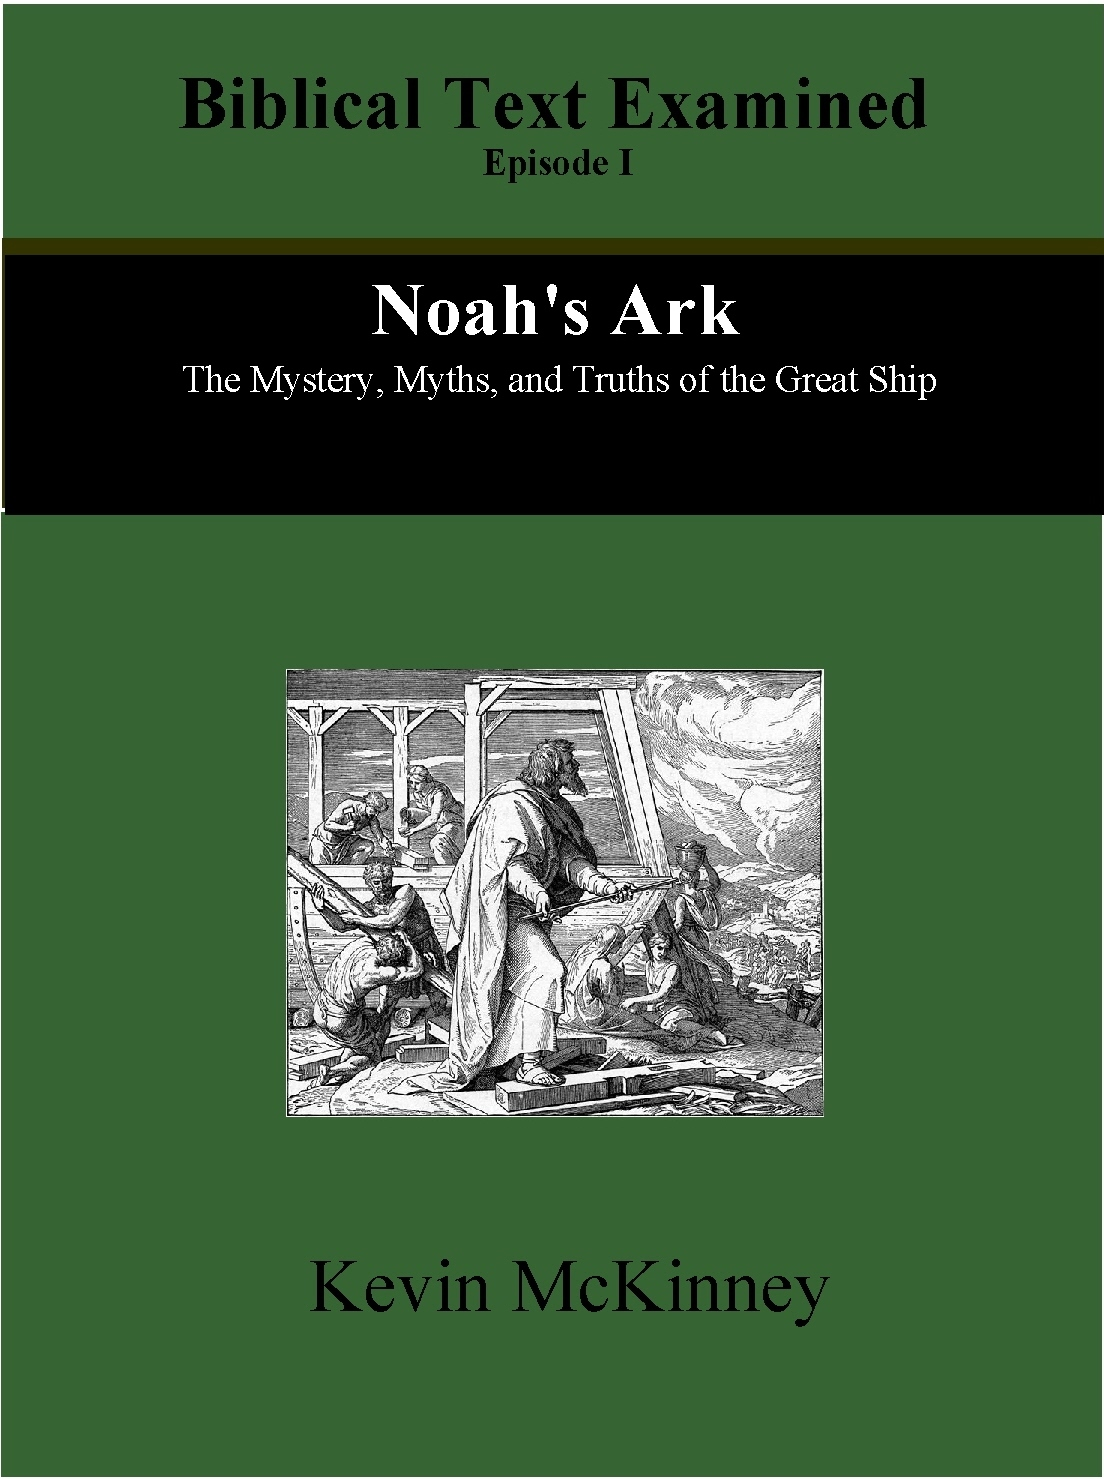 Noah's Ark: The Mystery, Myths, and Truths of the Great Ship